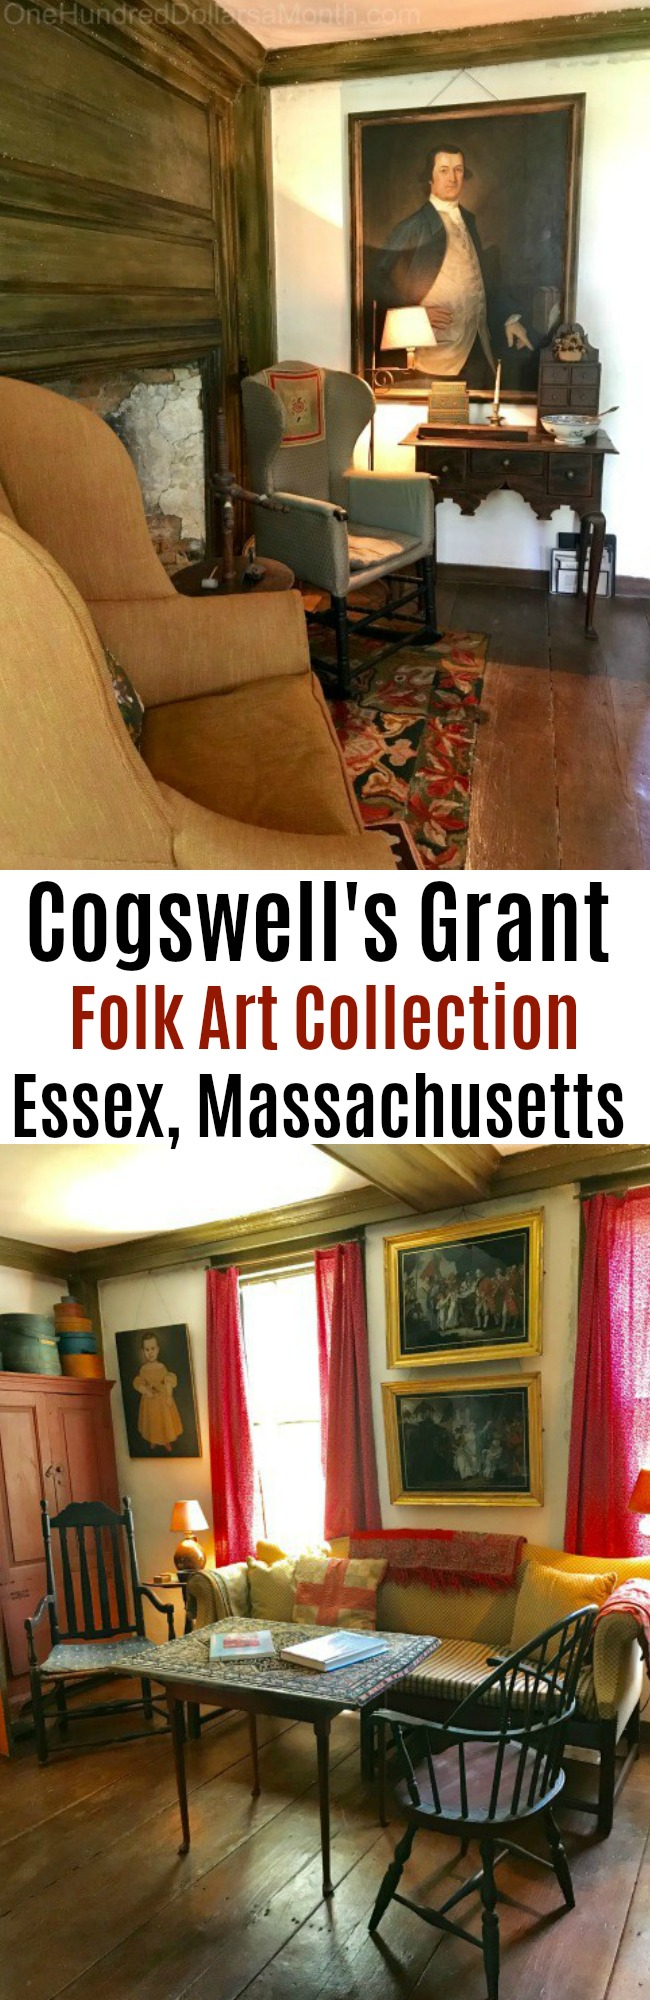 Cogswell's Grant Estate and American Folk Art Collection in Essex, Massachusetts